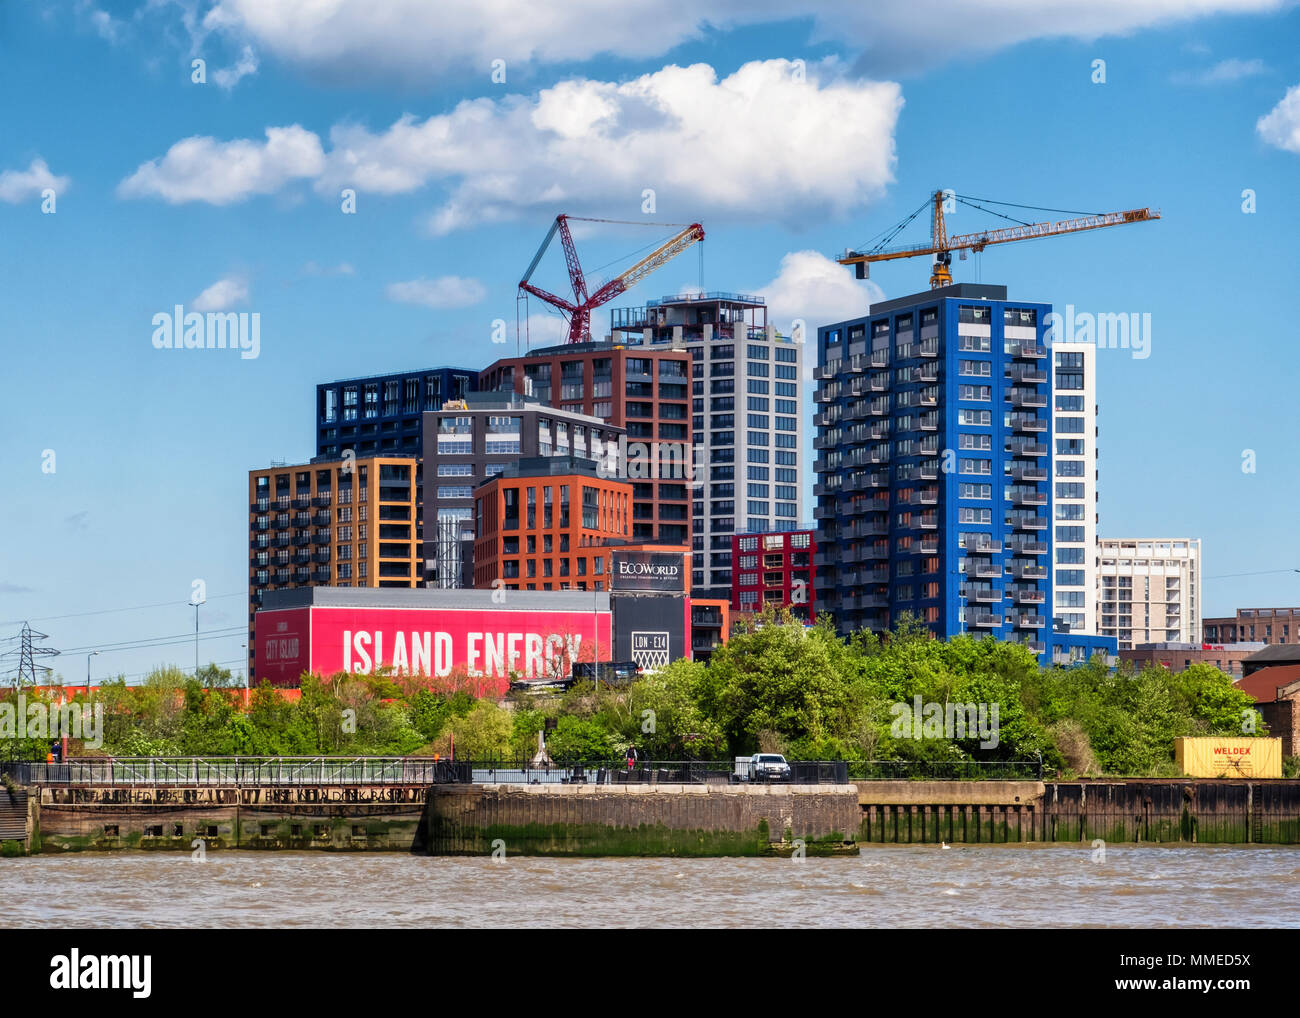 London City Island, new-build luxury riverside apartment development by Ballymore on Leamouth peninsula, Canning Town, London - Stock Image